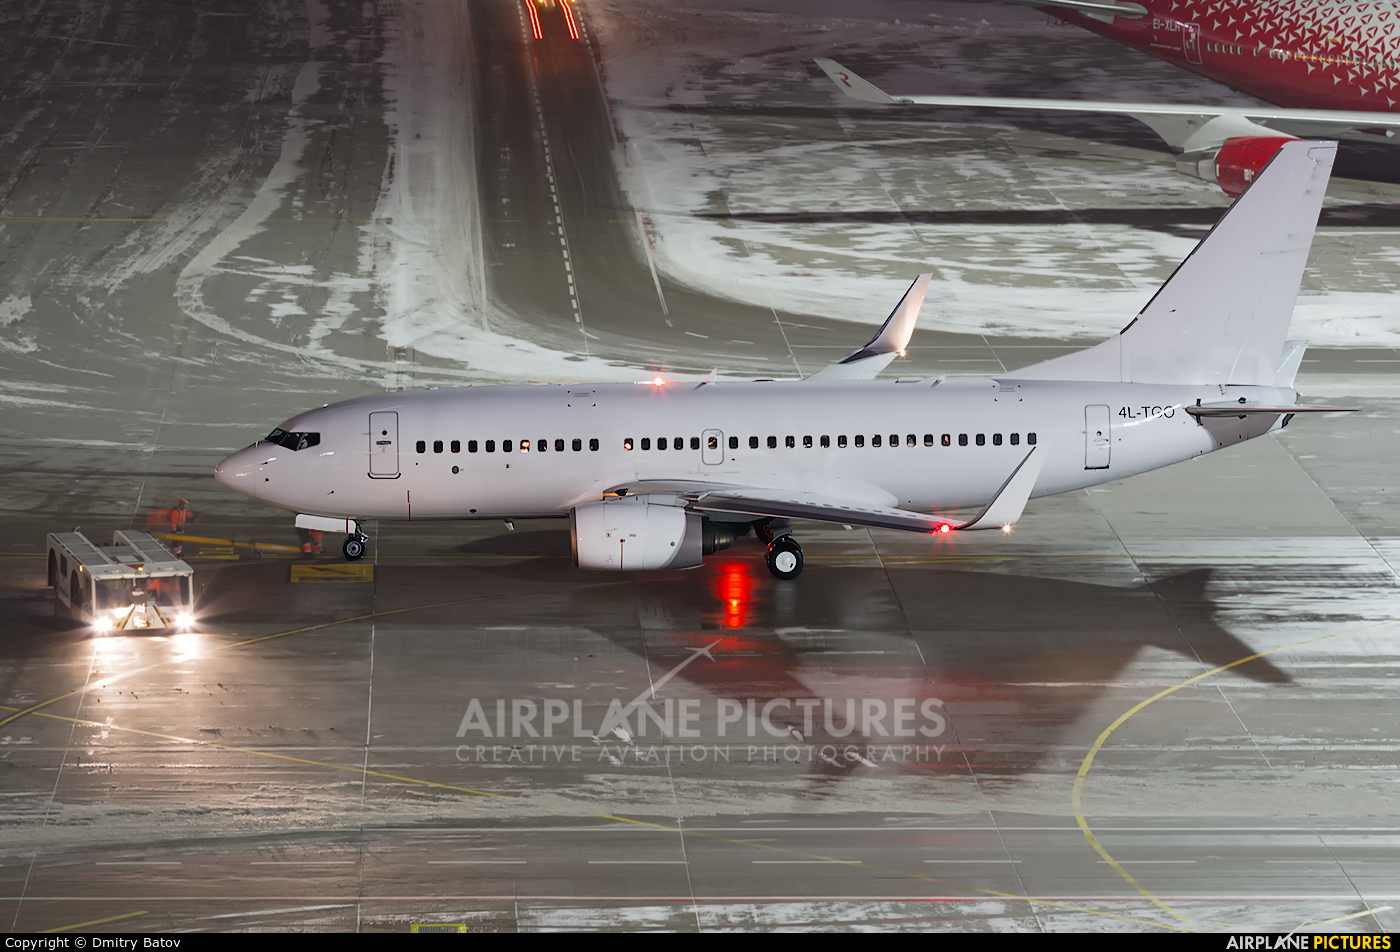 Airzena - Georgian Airlines 4L-TGO aircraft at Moscow - Vnukovo